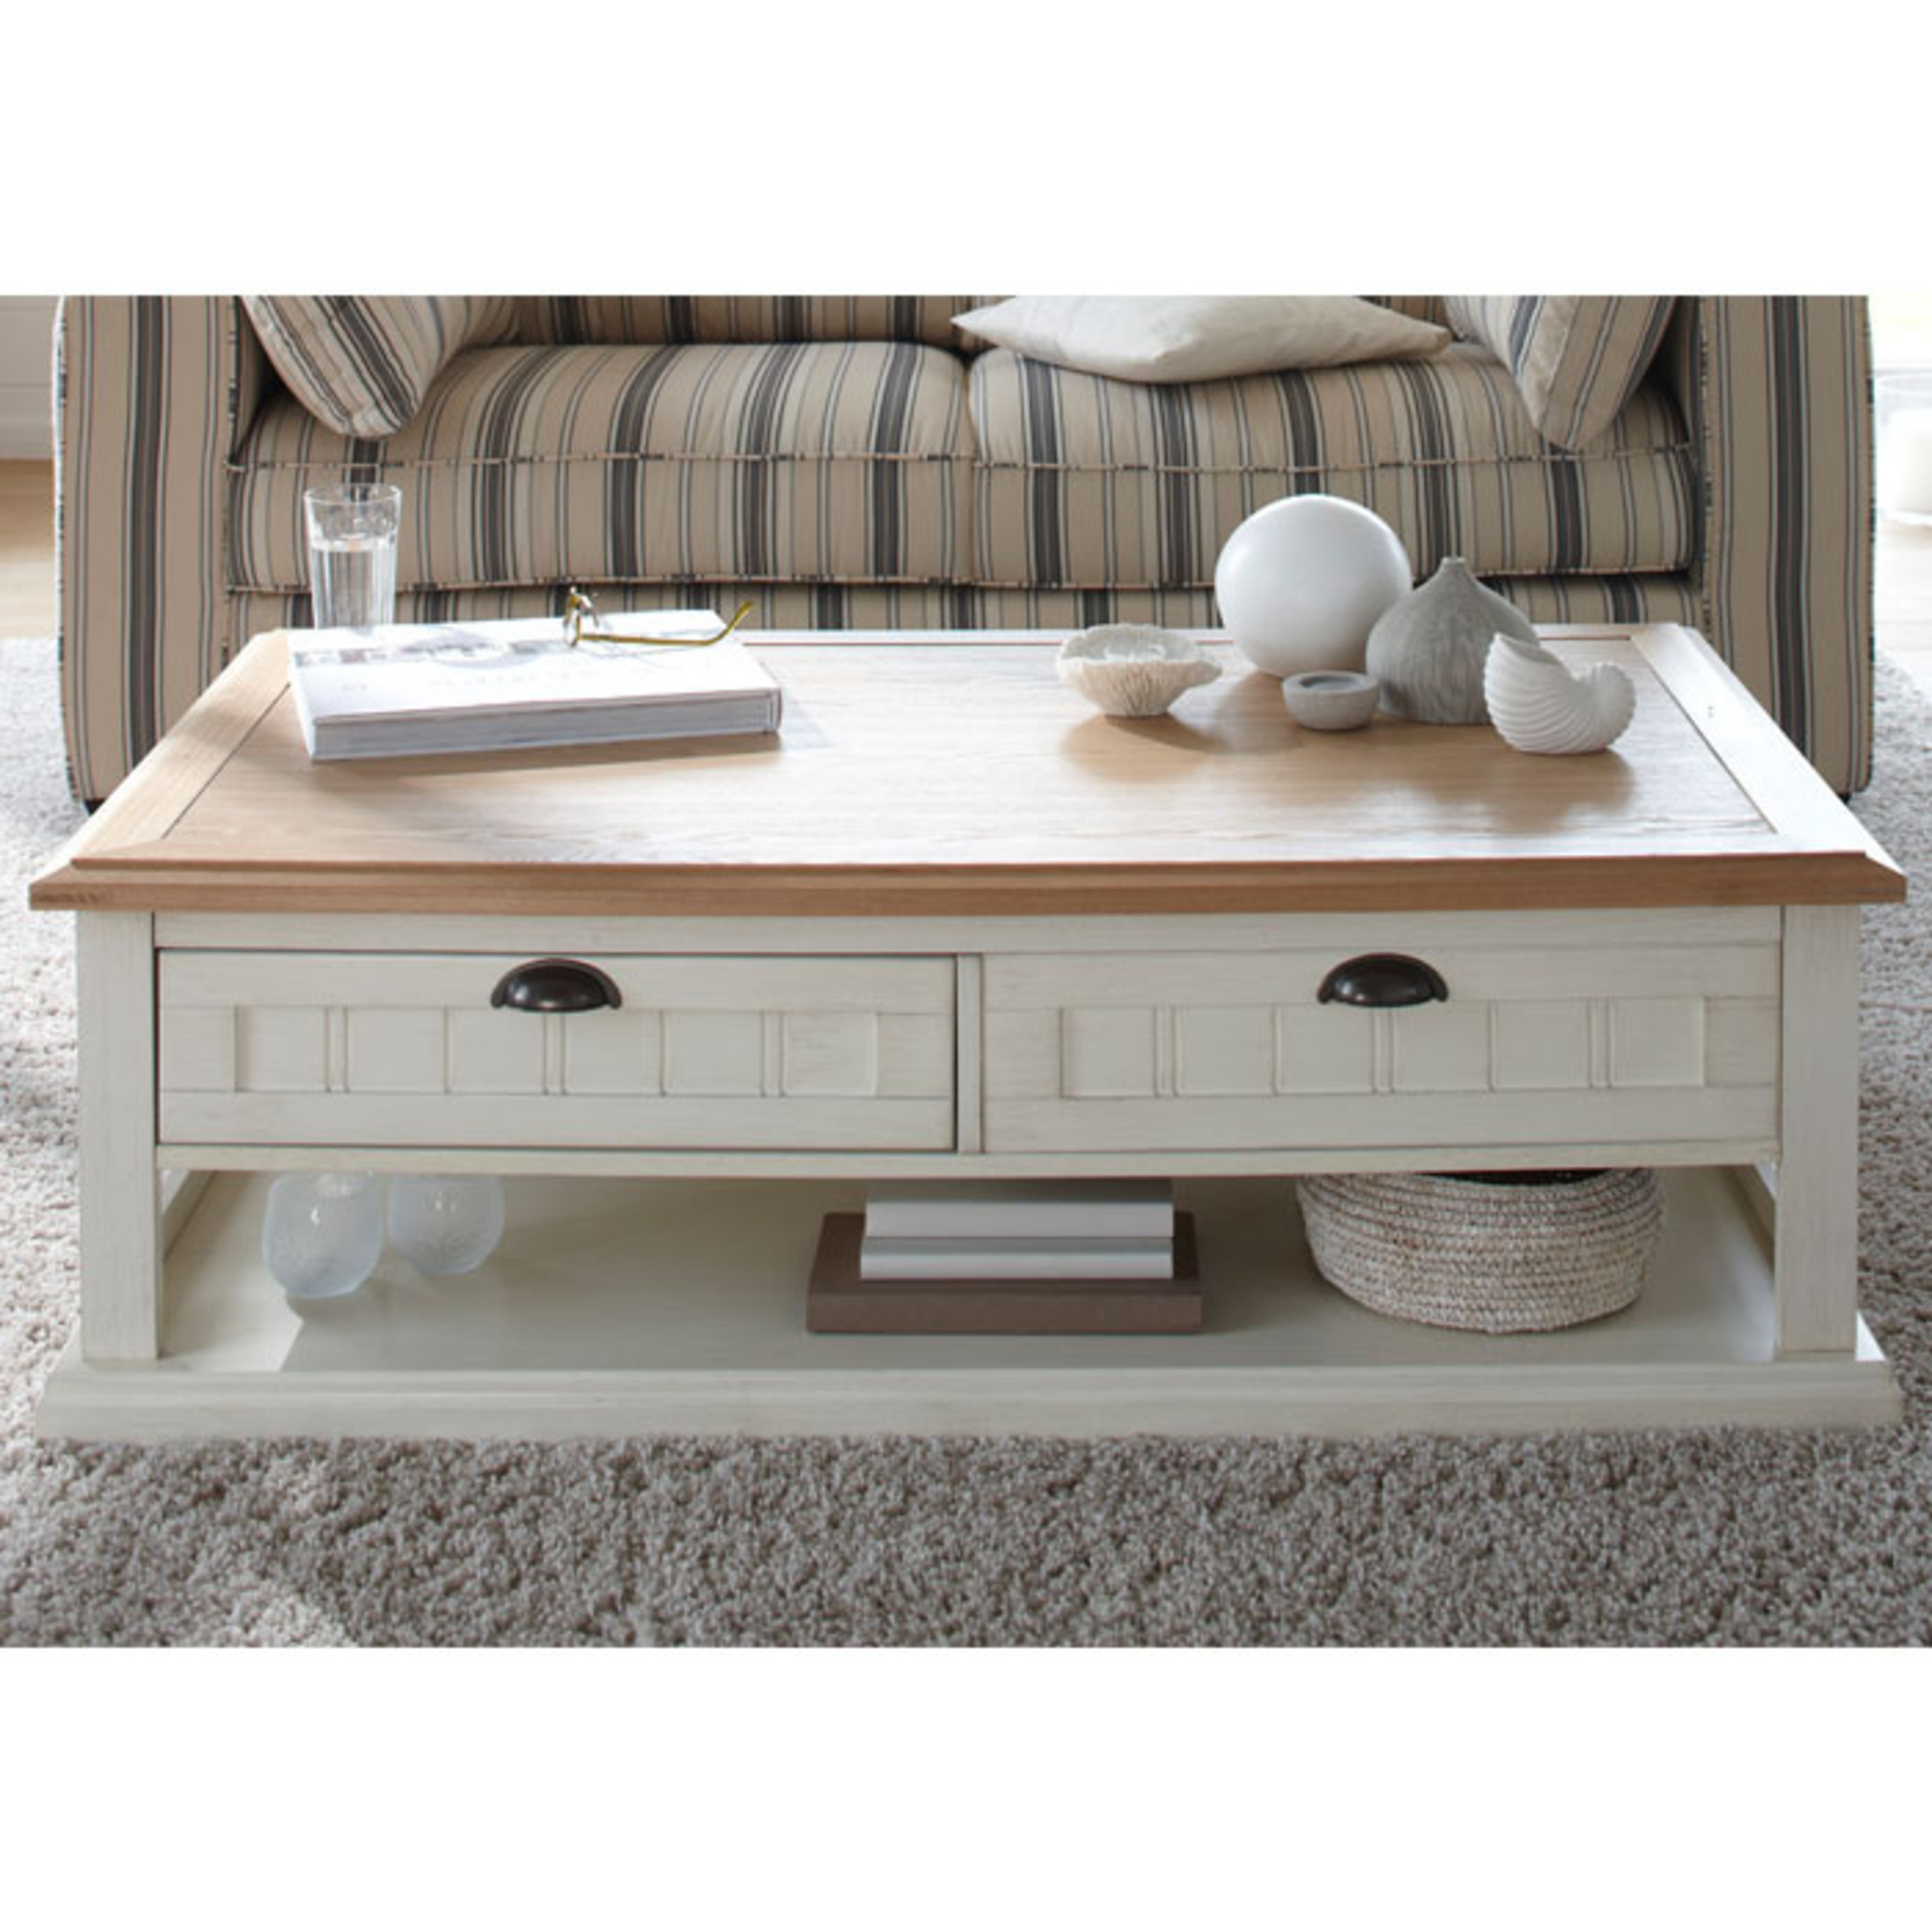 Table basse rectangulaire 2 tiroirs berling blanc patin anniversaire 40 - Table en bois blanche ...